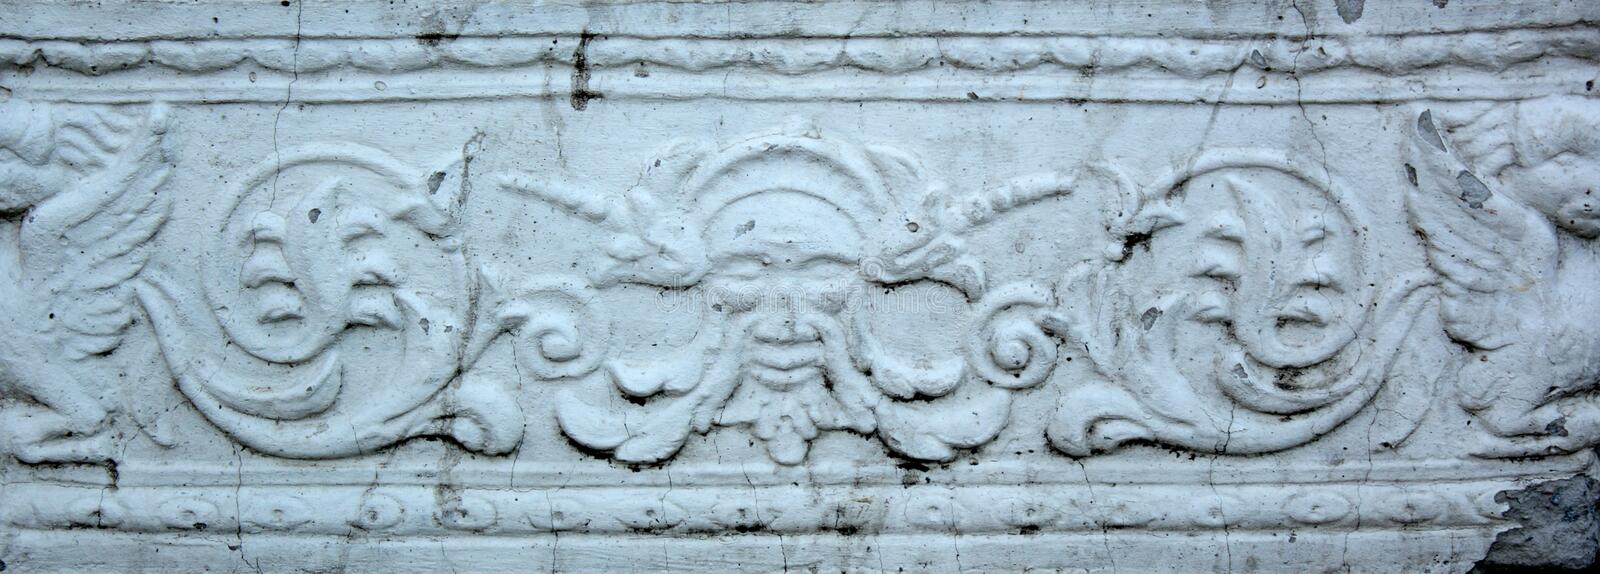 Download Gypsum bas-relief stock image. Image of drawing, rifts - 14350183